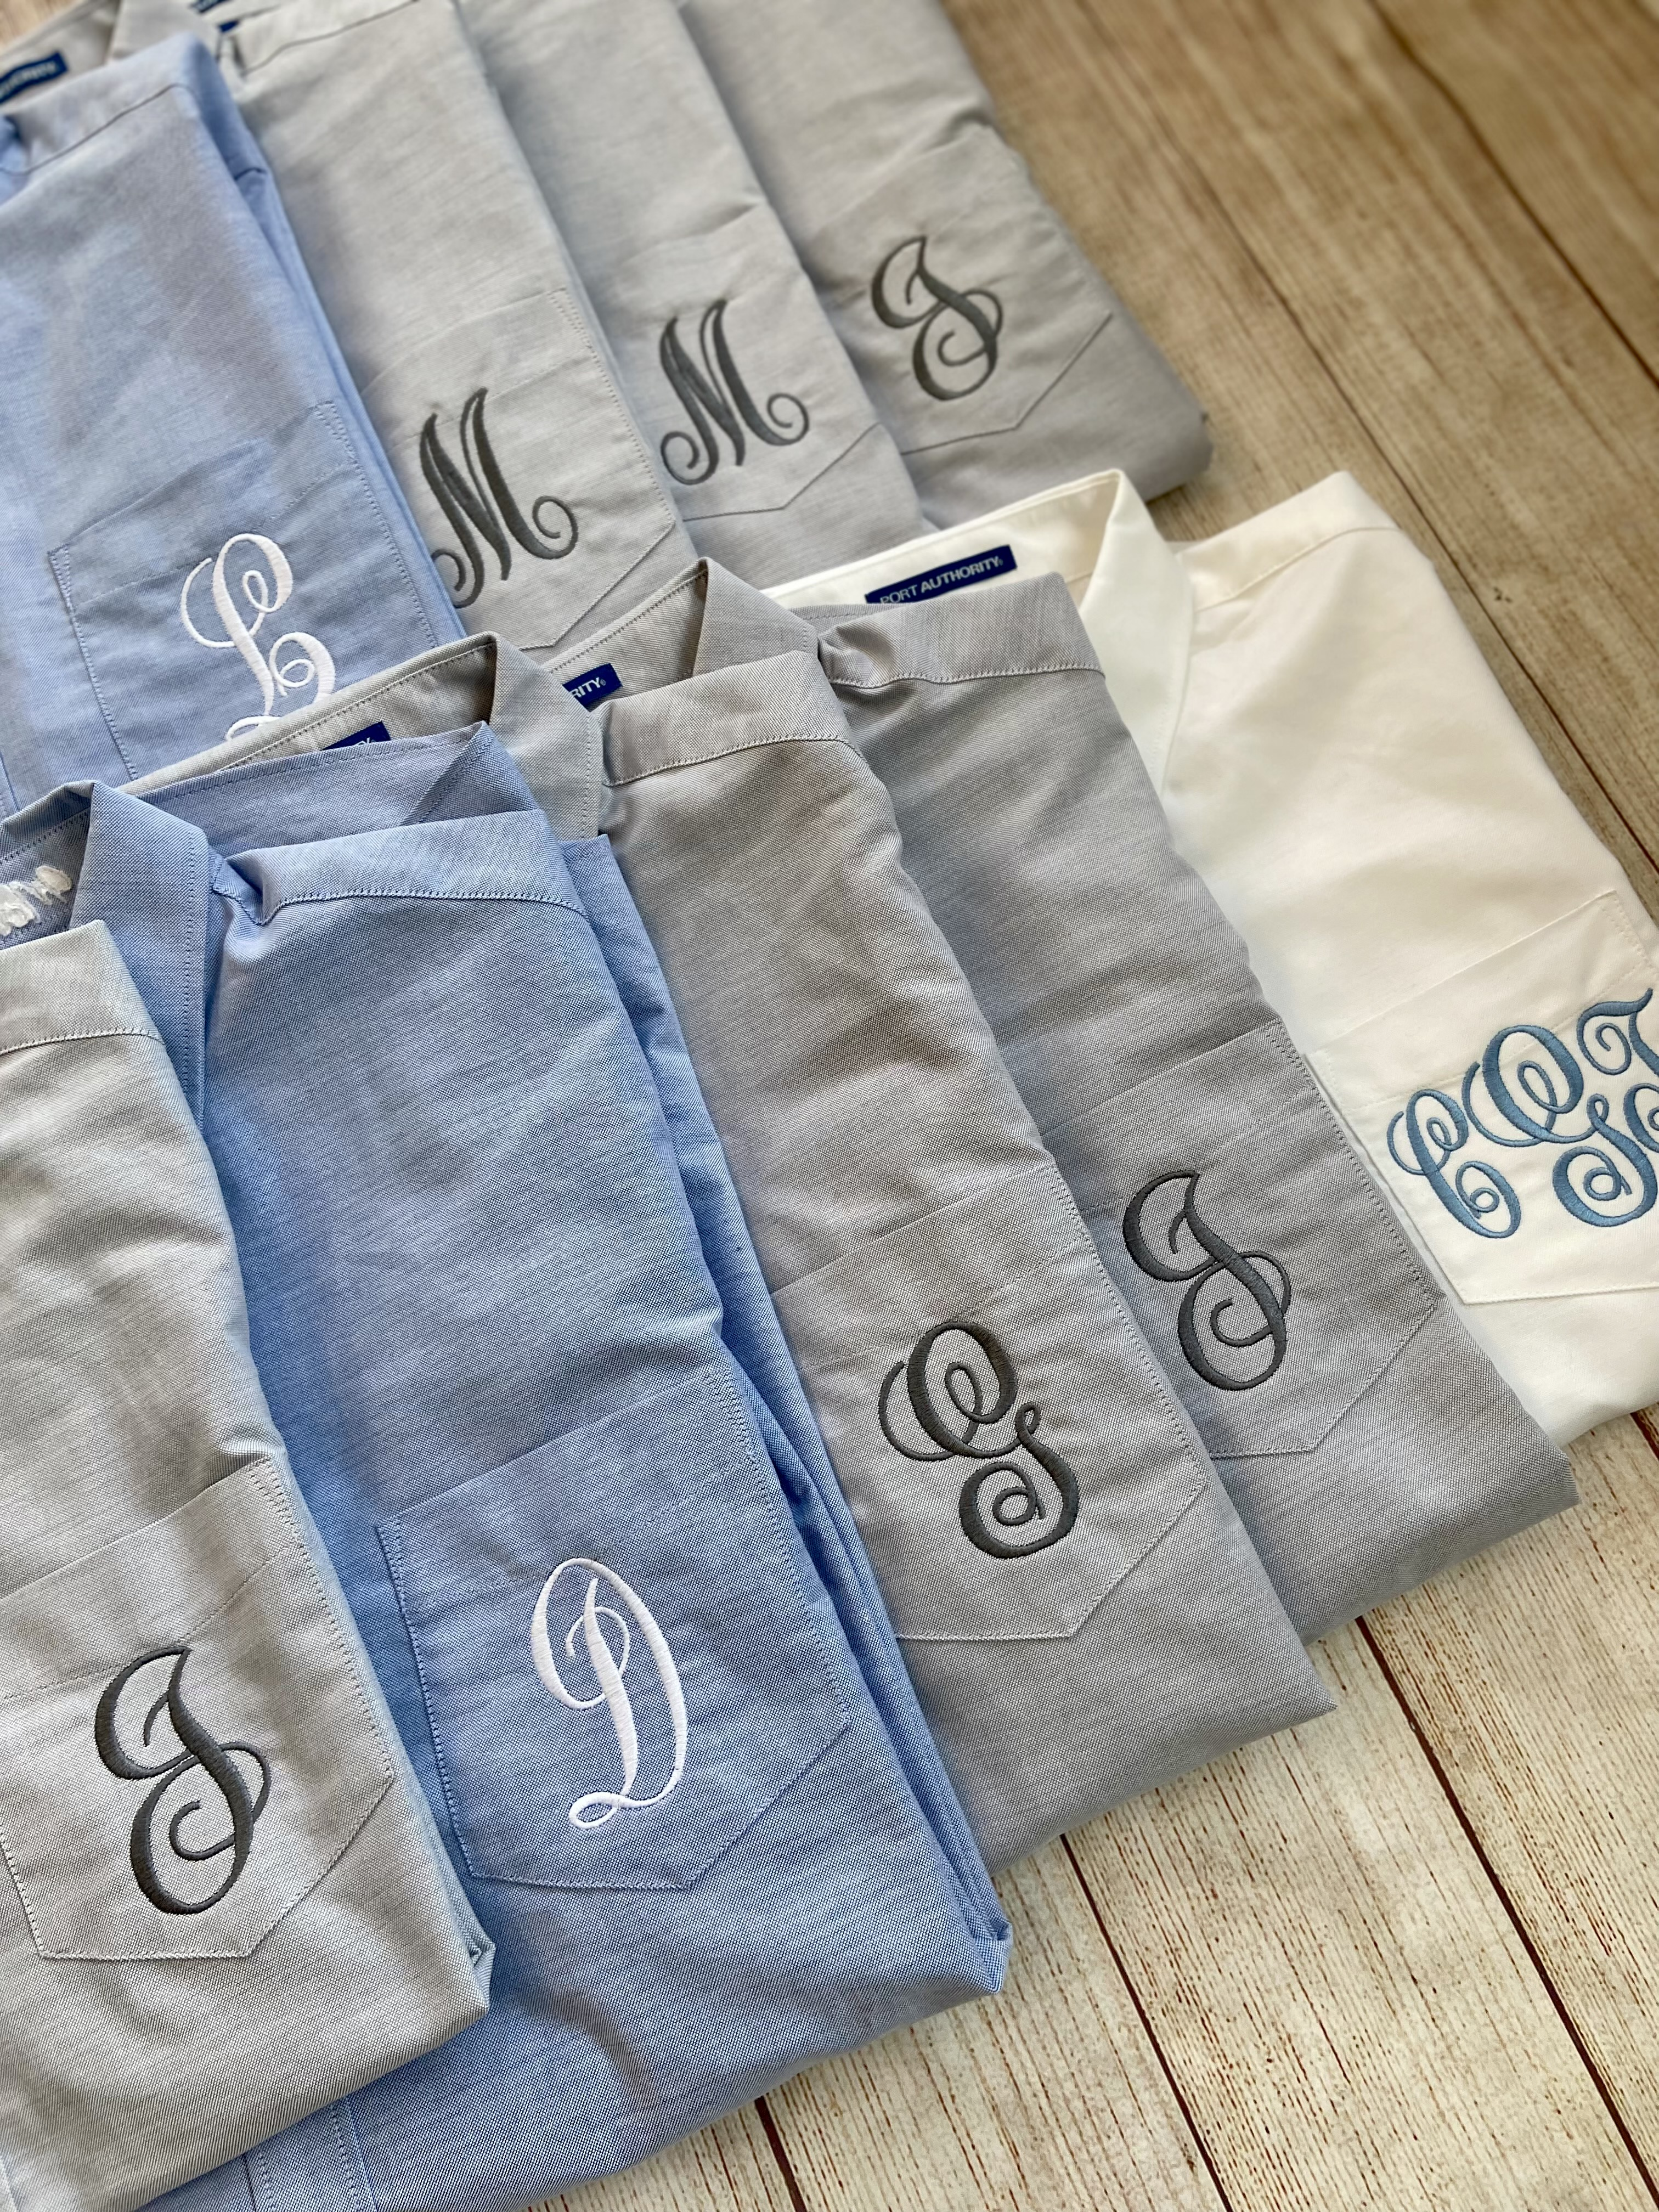 Get them for the whole bridal party! Monogram oxfords by Wicked Stitches.